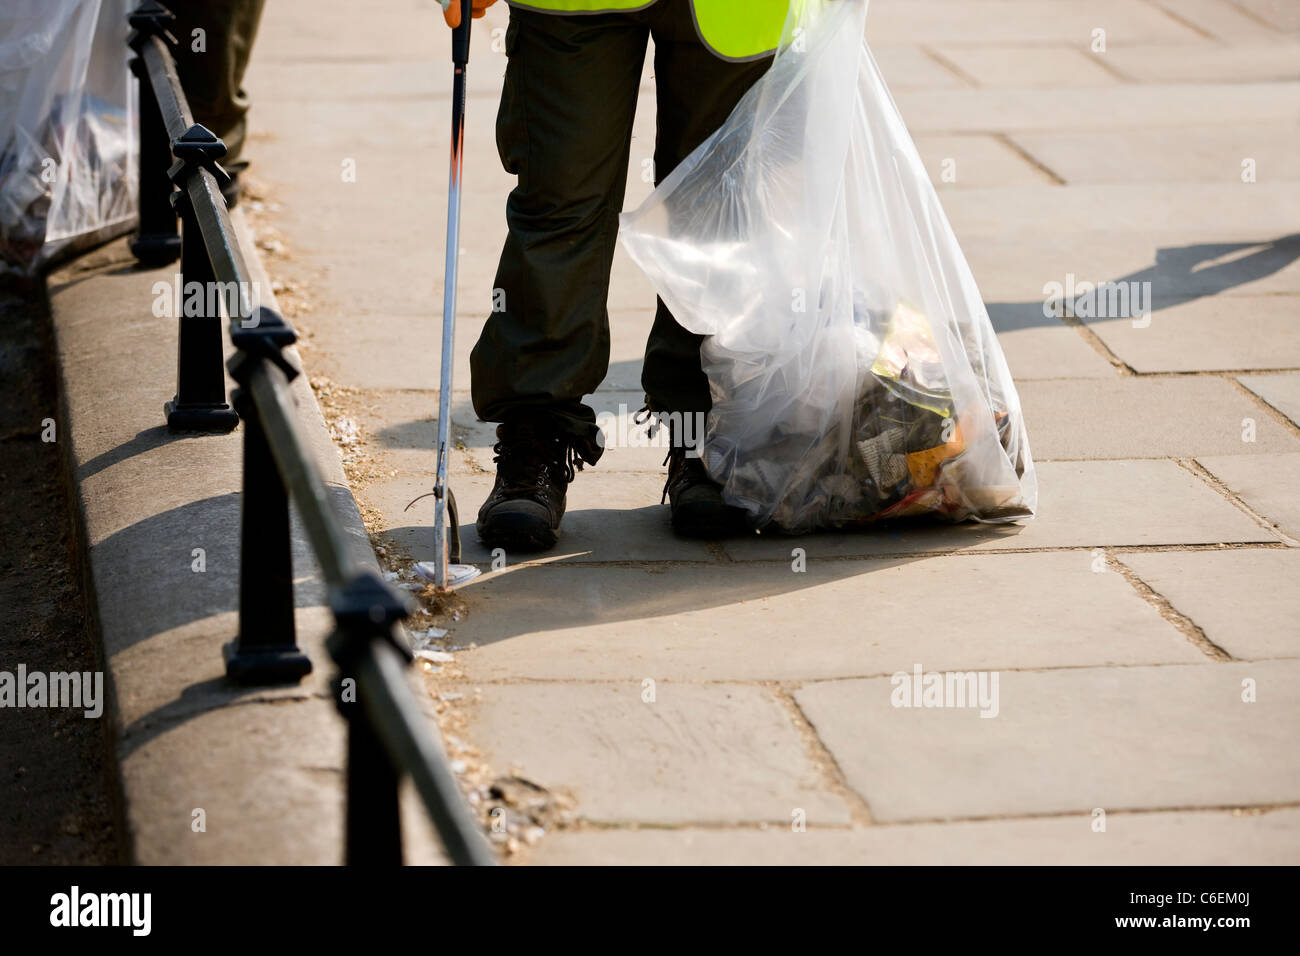 A man collecting rubbish from the street - Stock Image